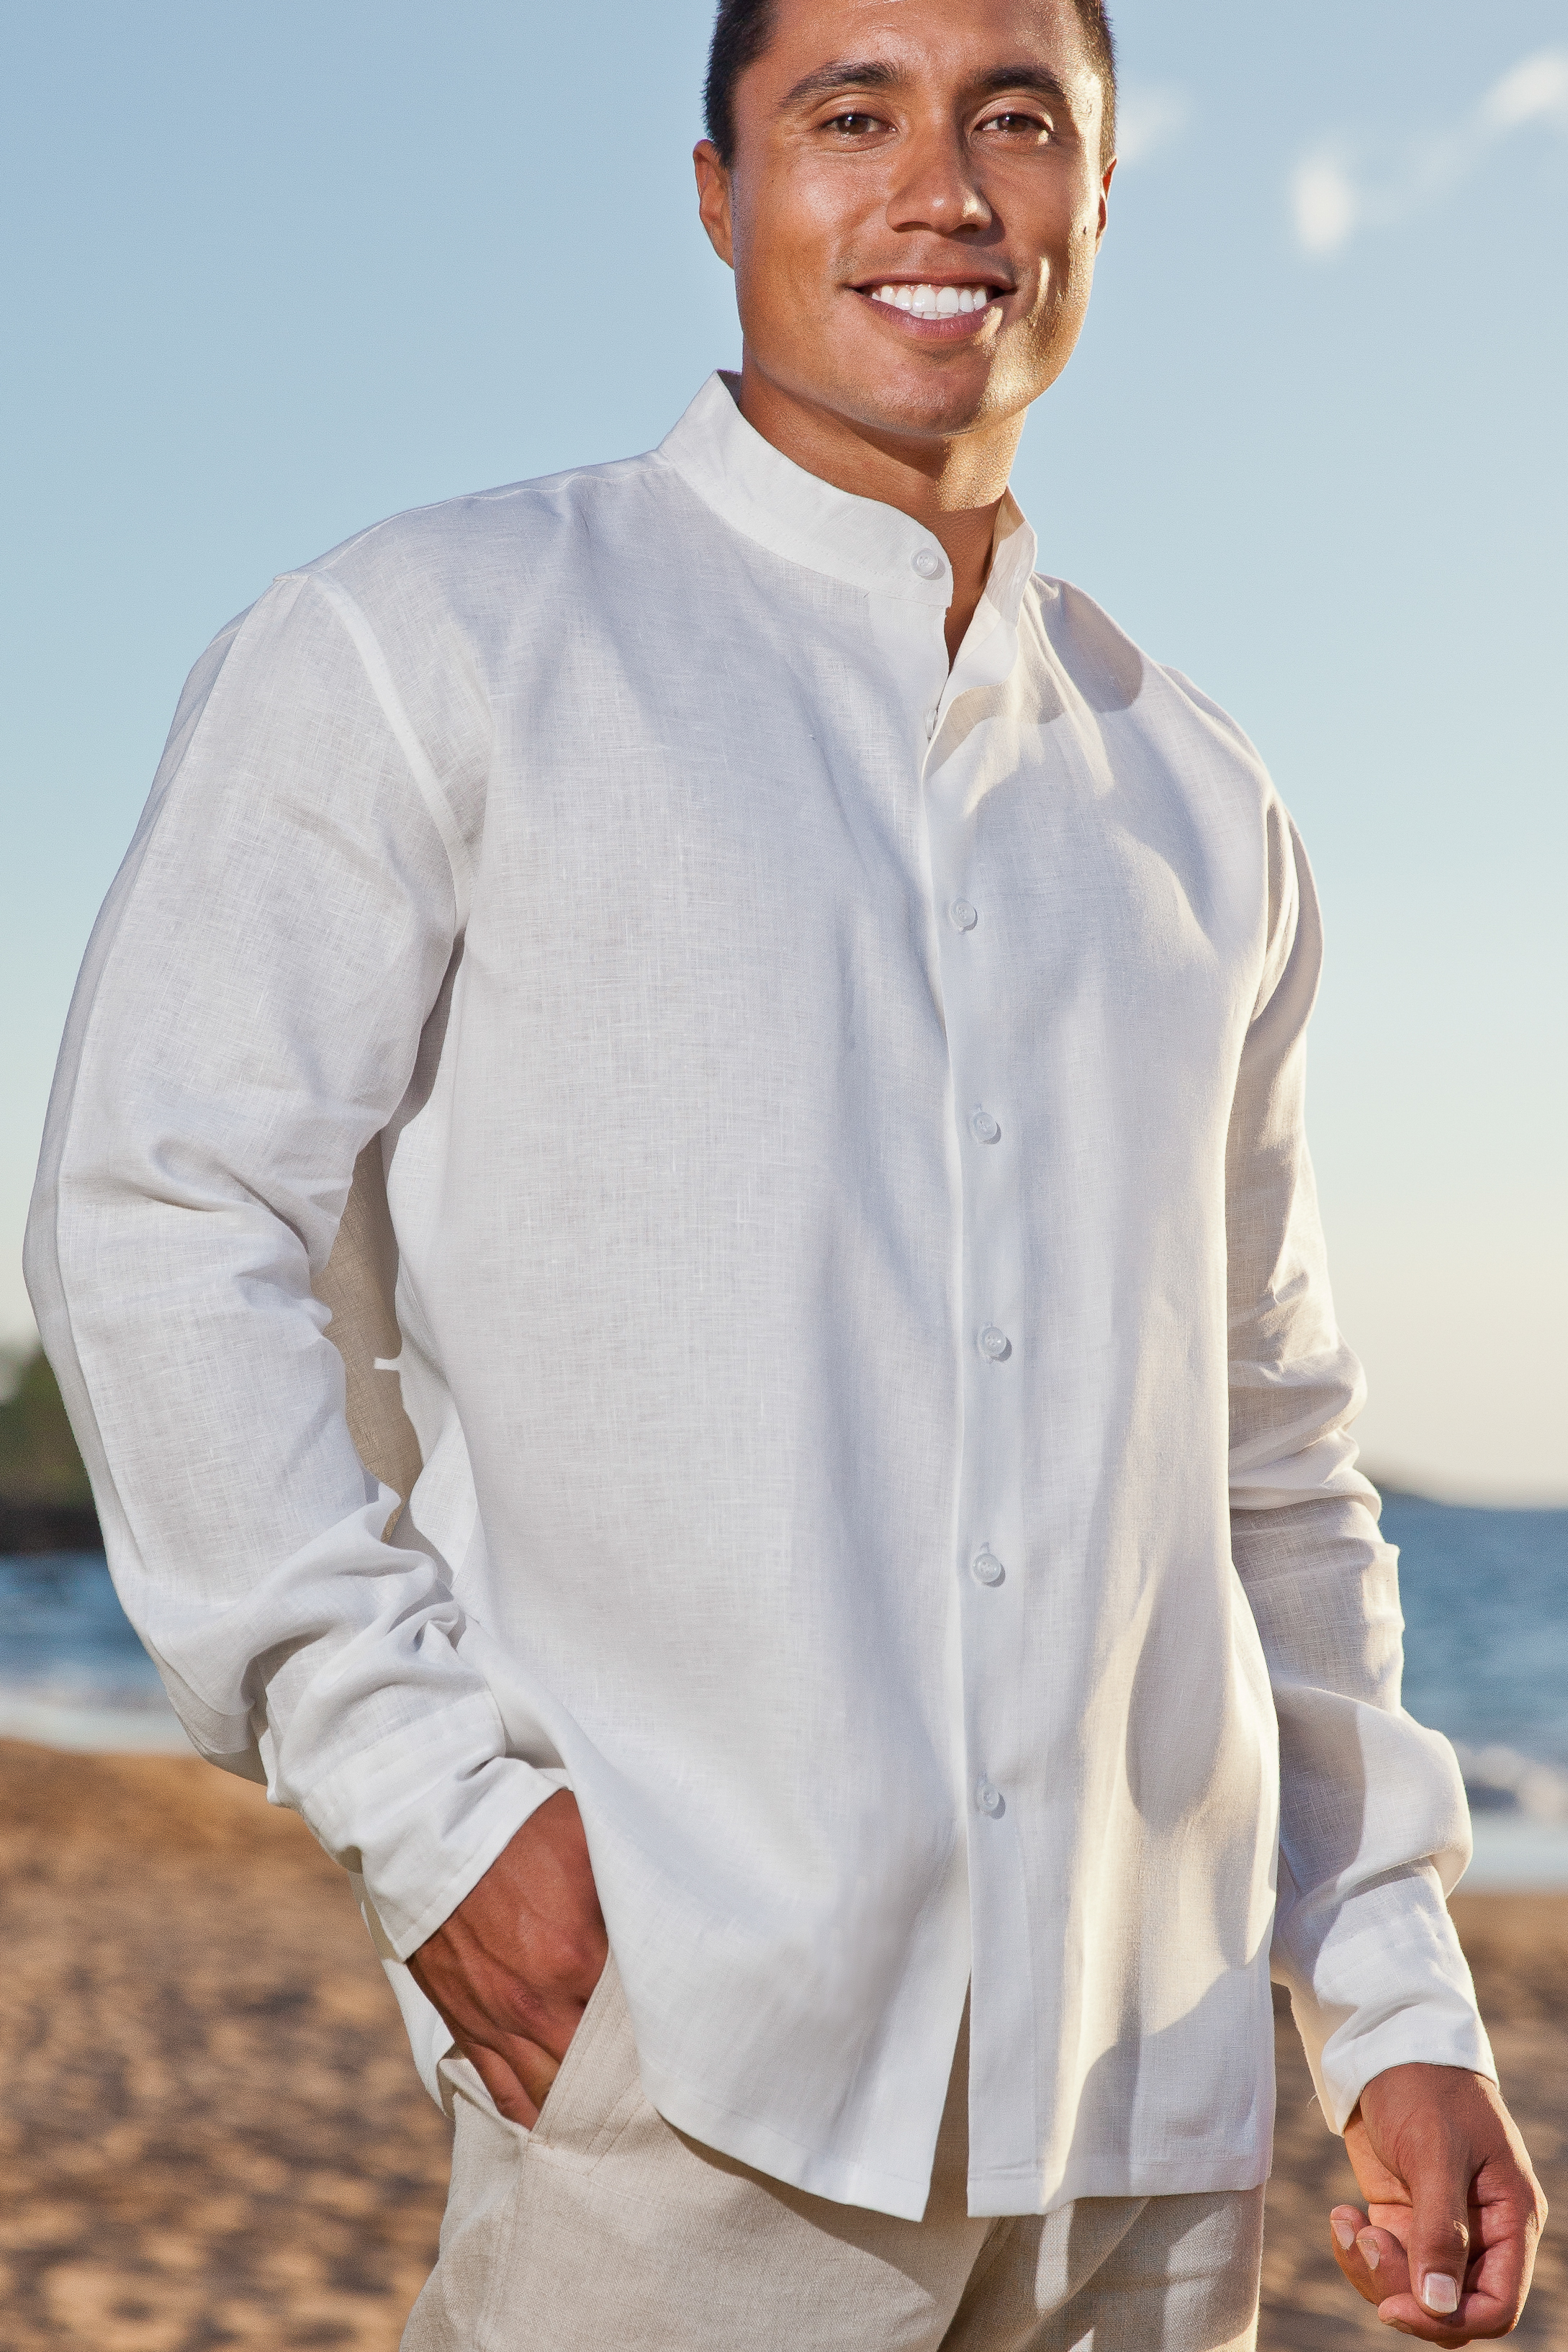 White Beach Shirts For Men Images